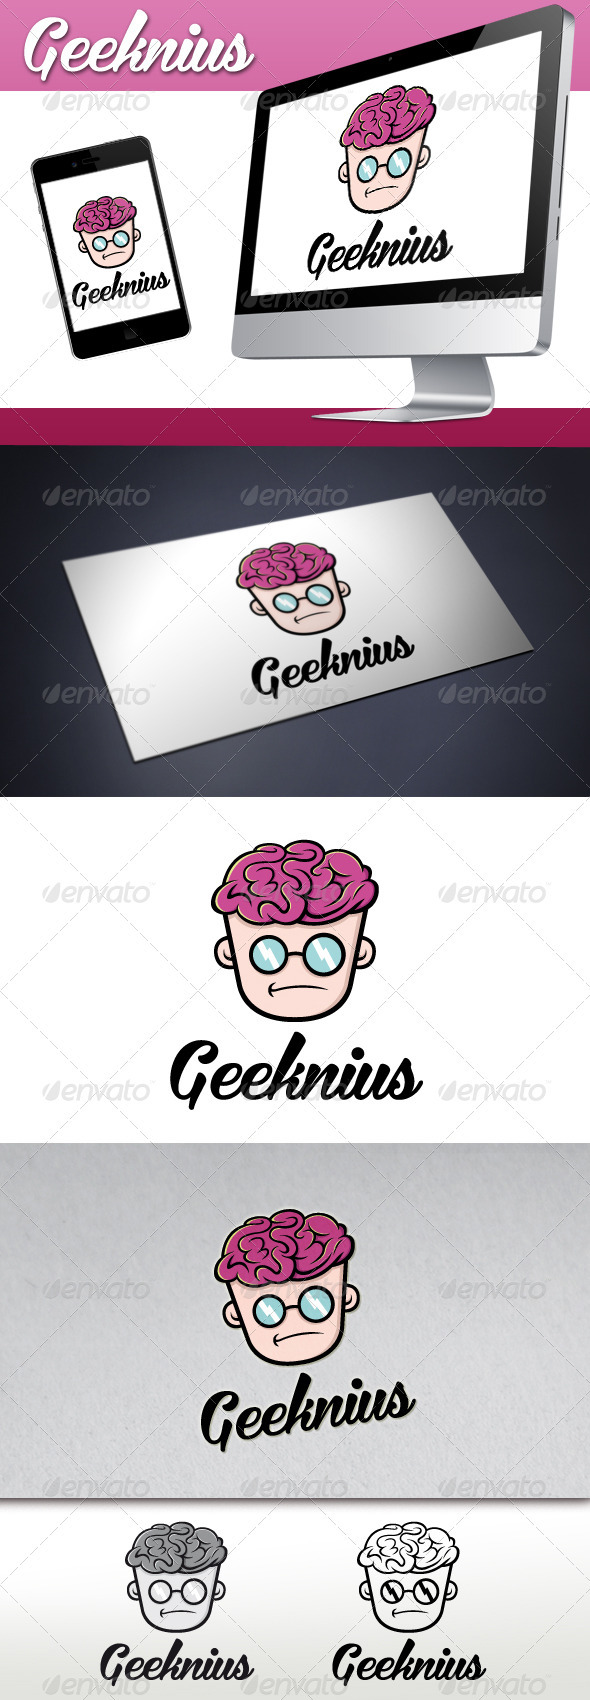 GraphicRiver Geek Genius Logo 3544701